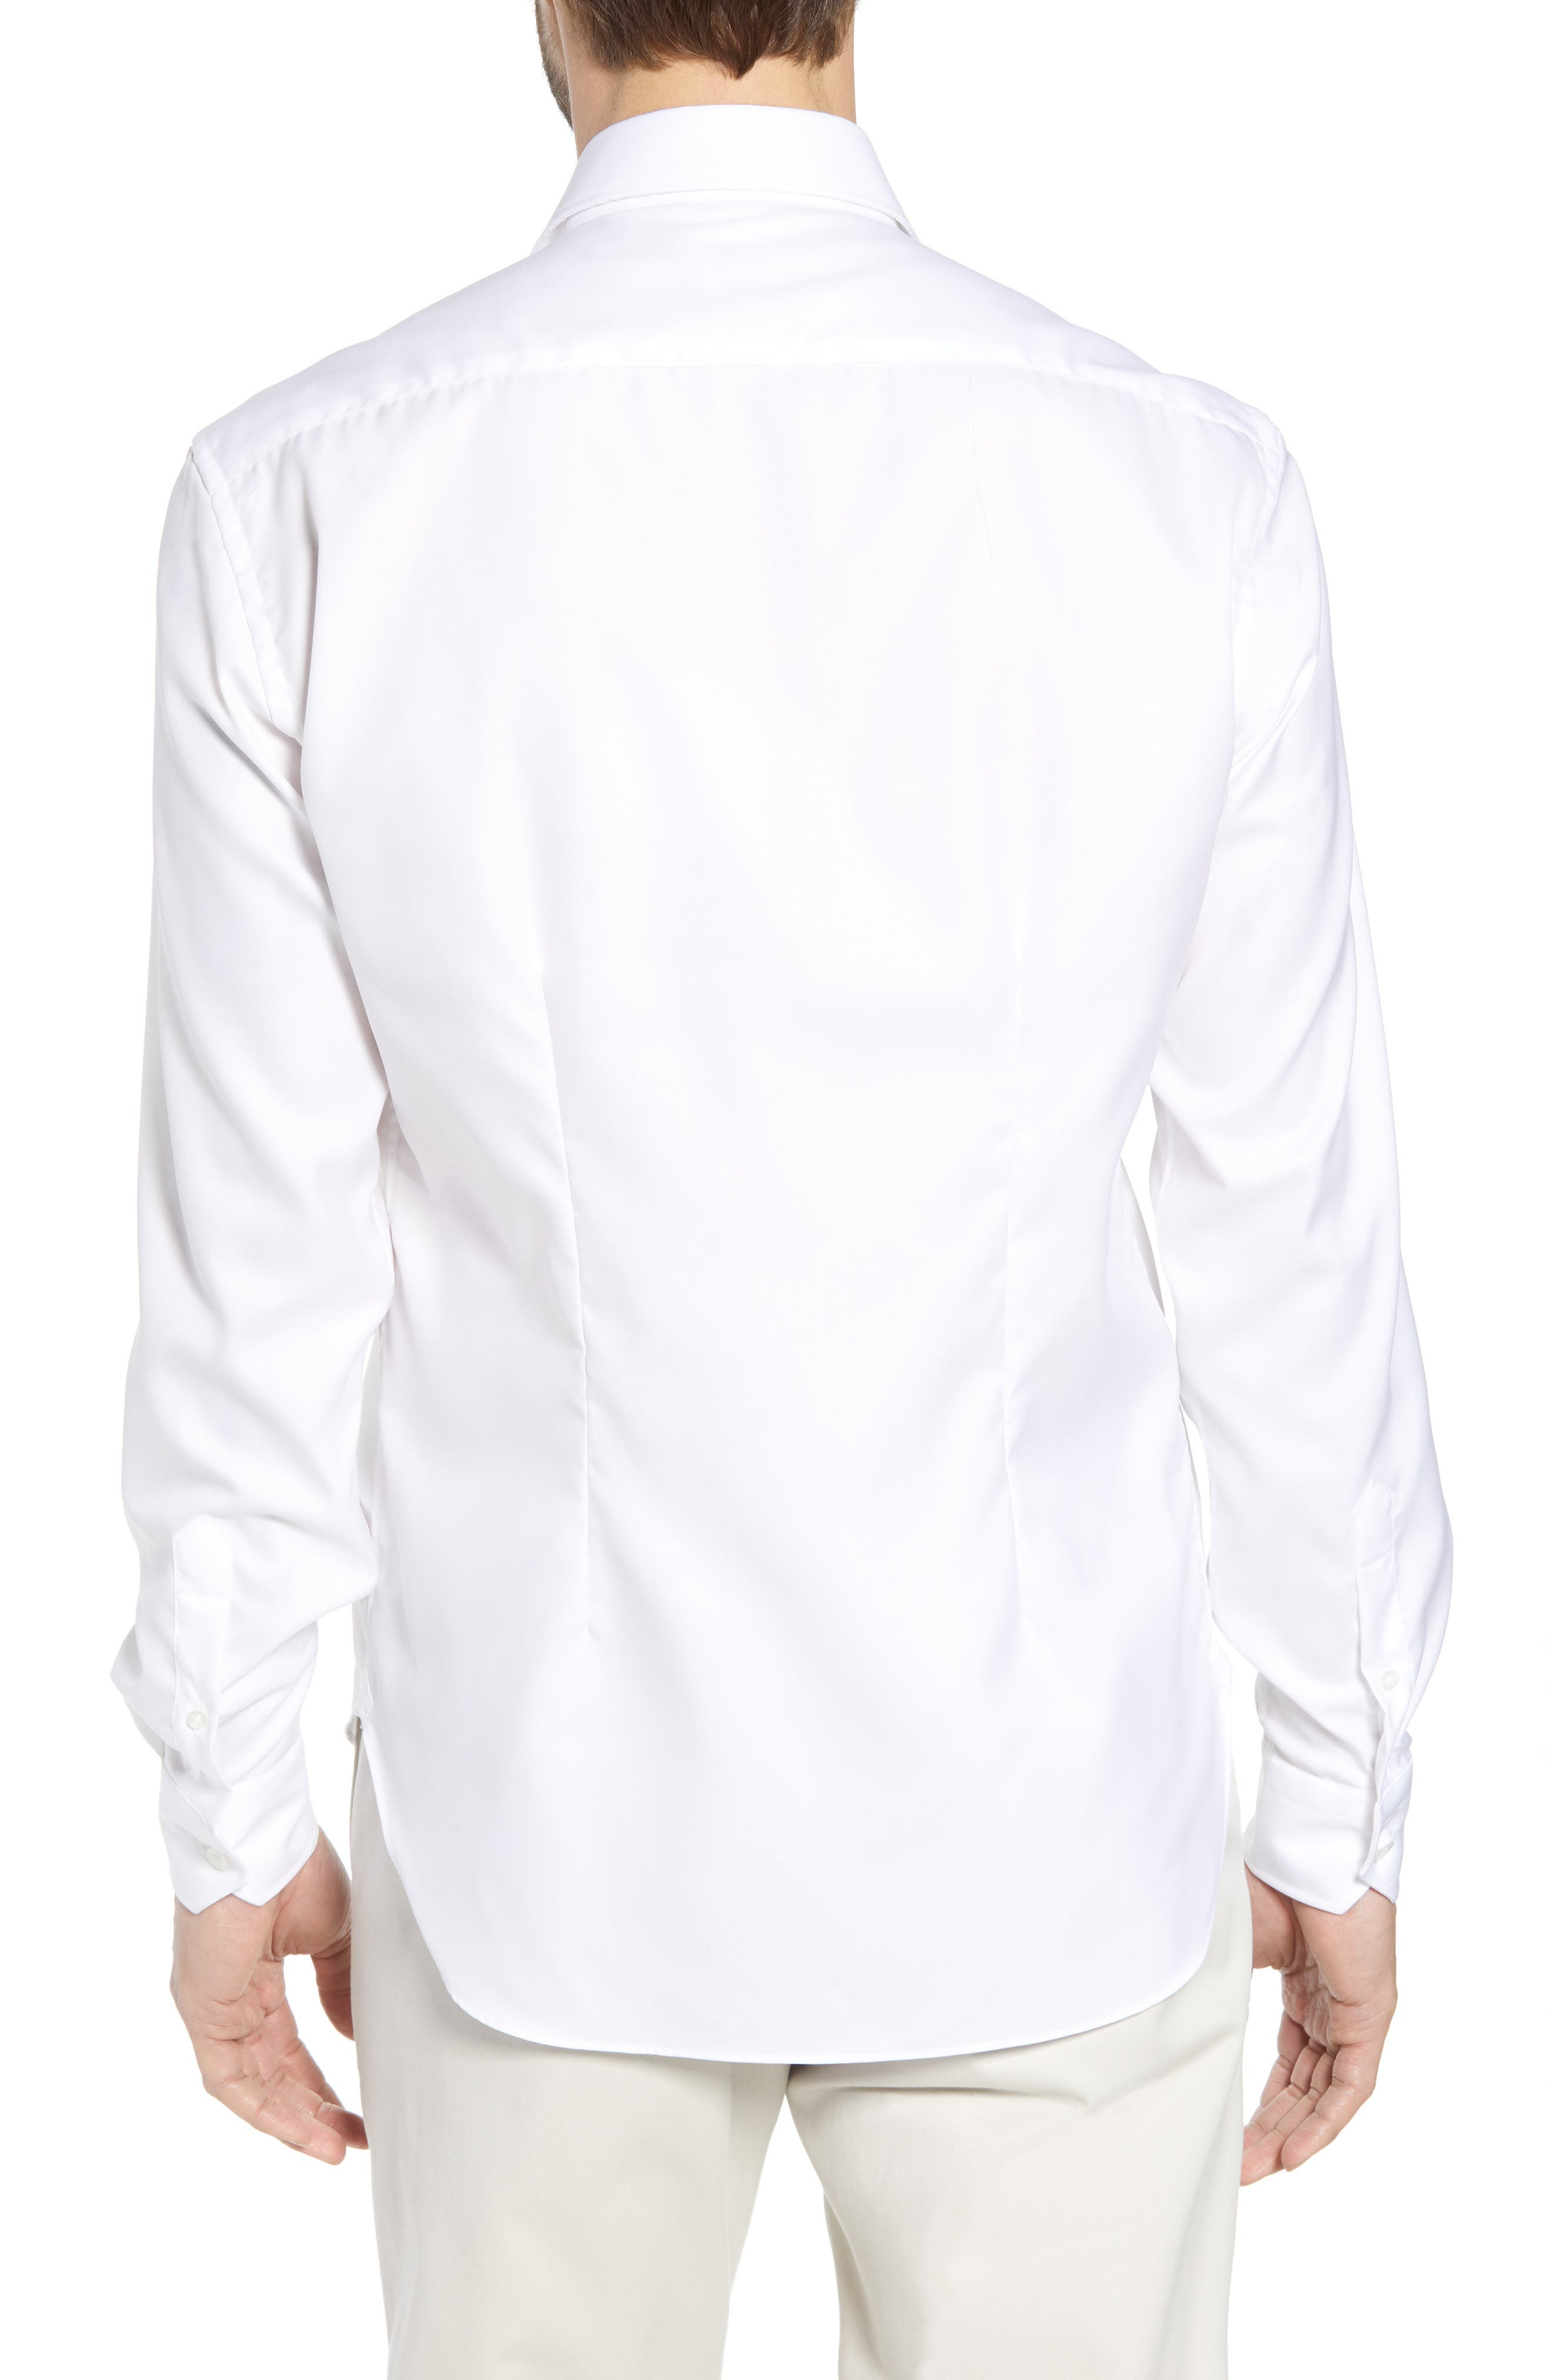 Crease Free Extra Soft Sport Shirt,                             Alternate thumbnail 3, color,                             White